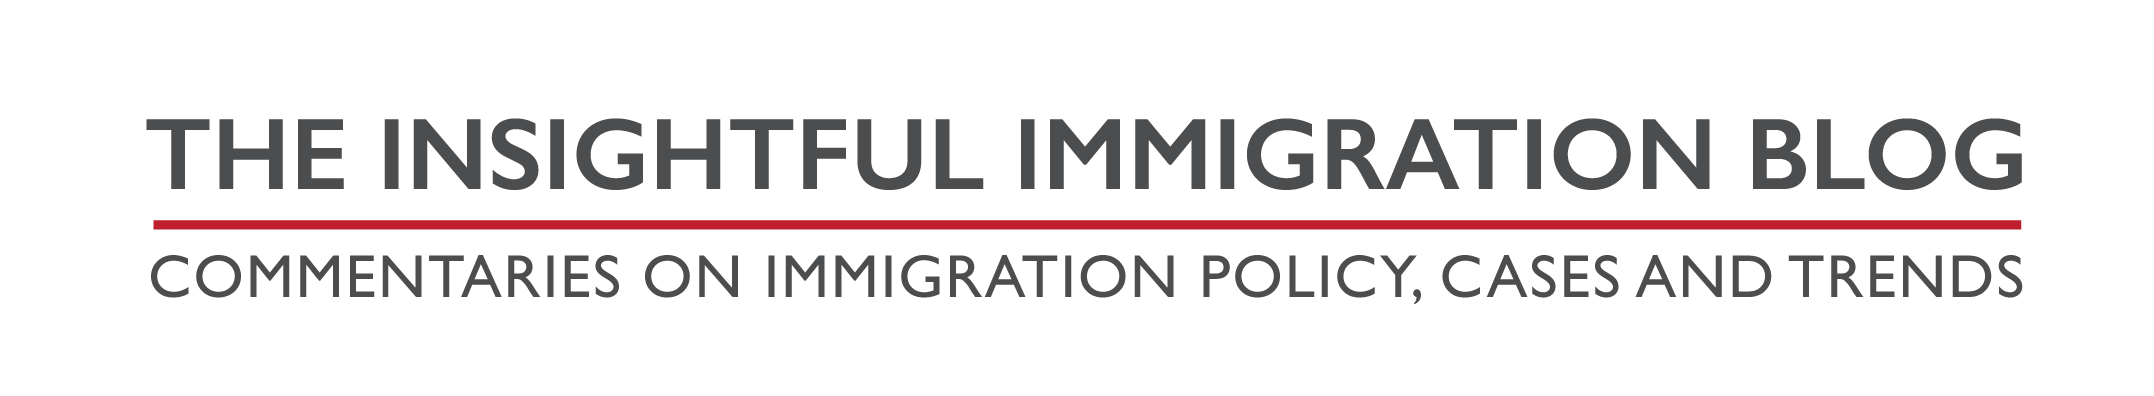 The Insightful Immigration Blog